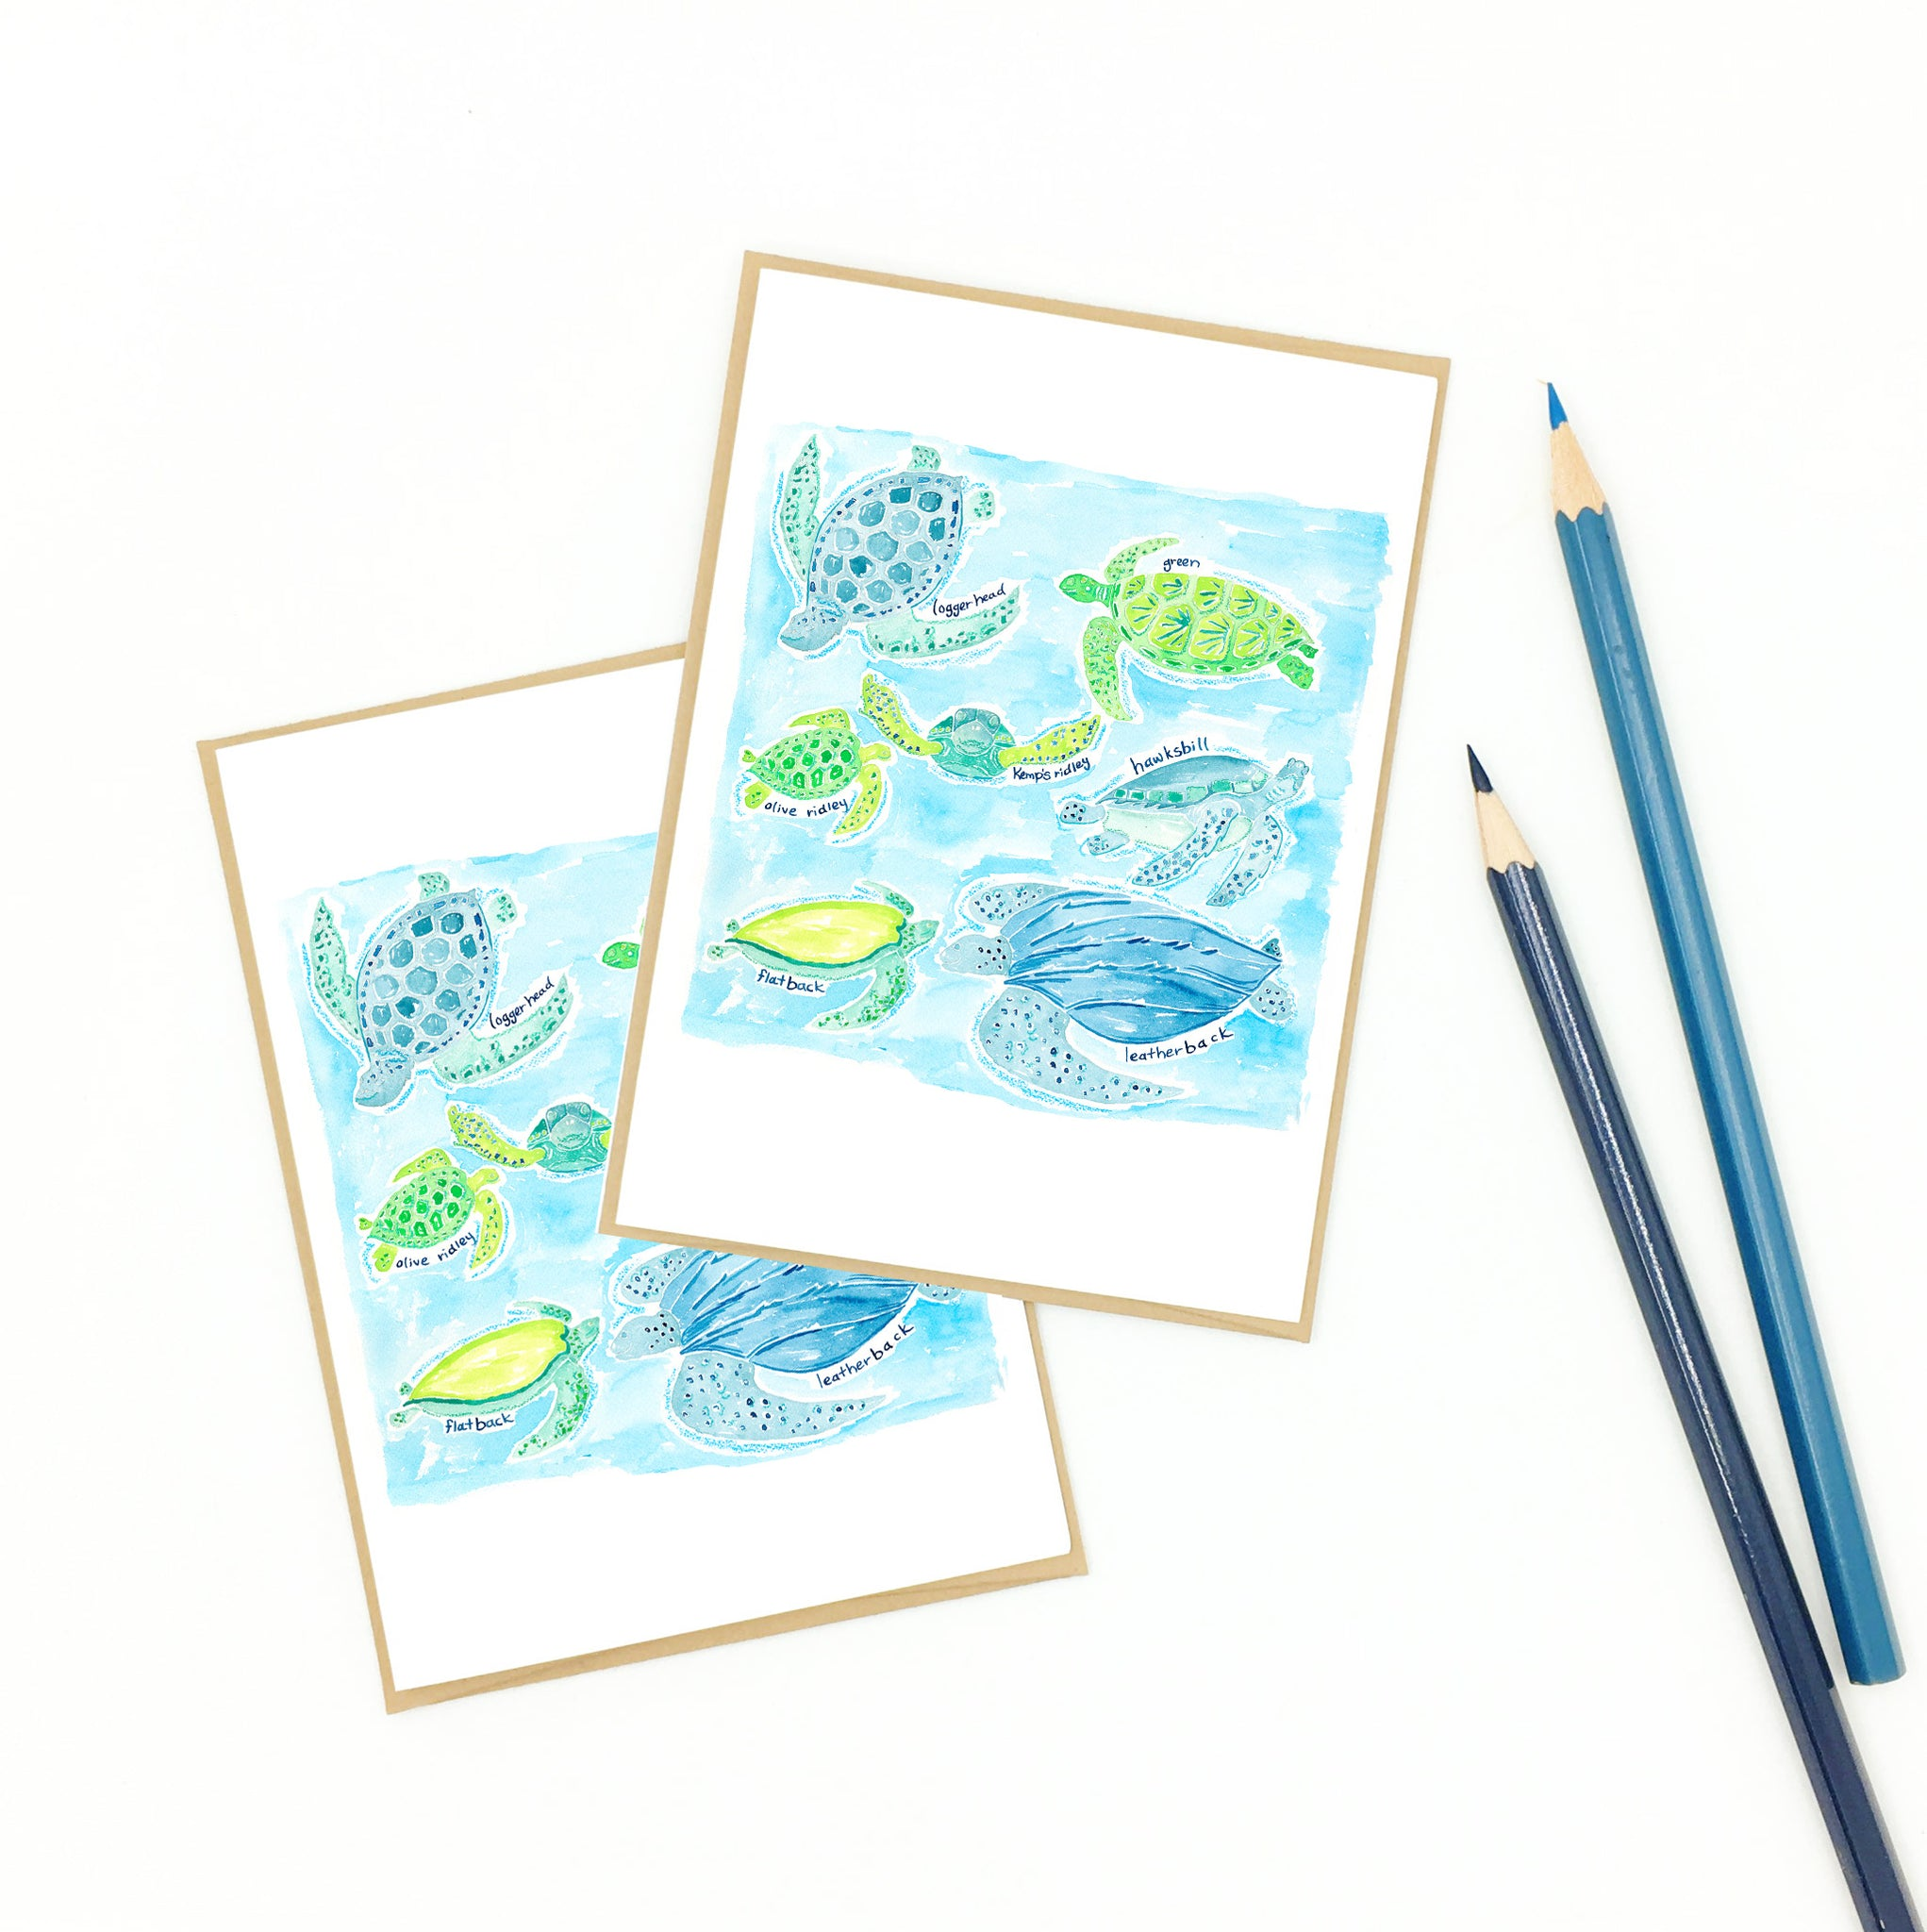 Turtle items, 'Sea Turtles of the World' notecard set.